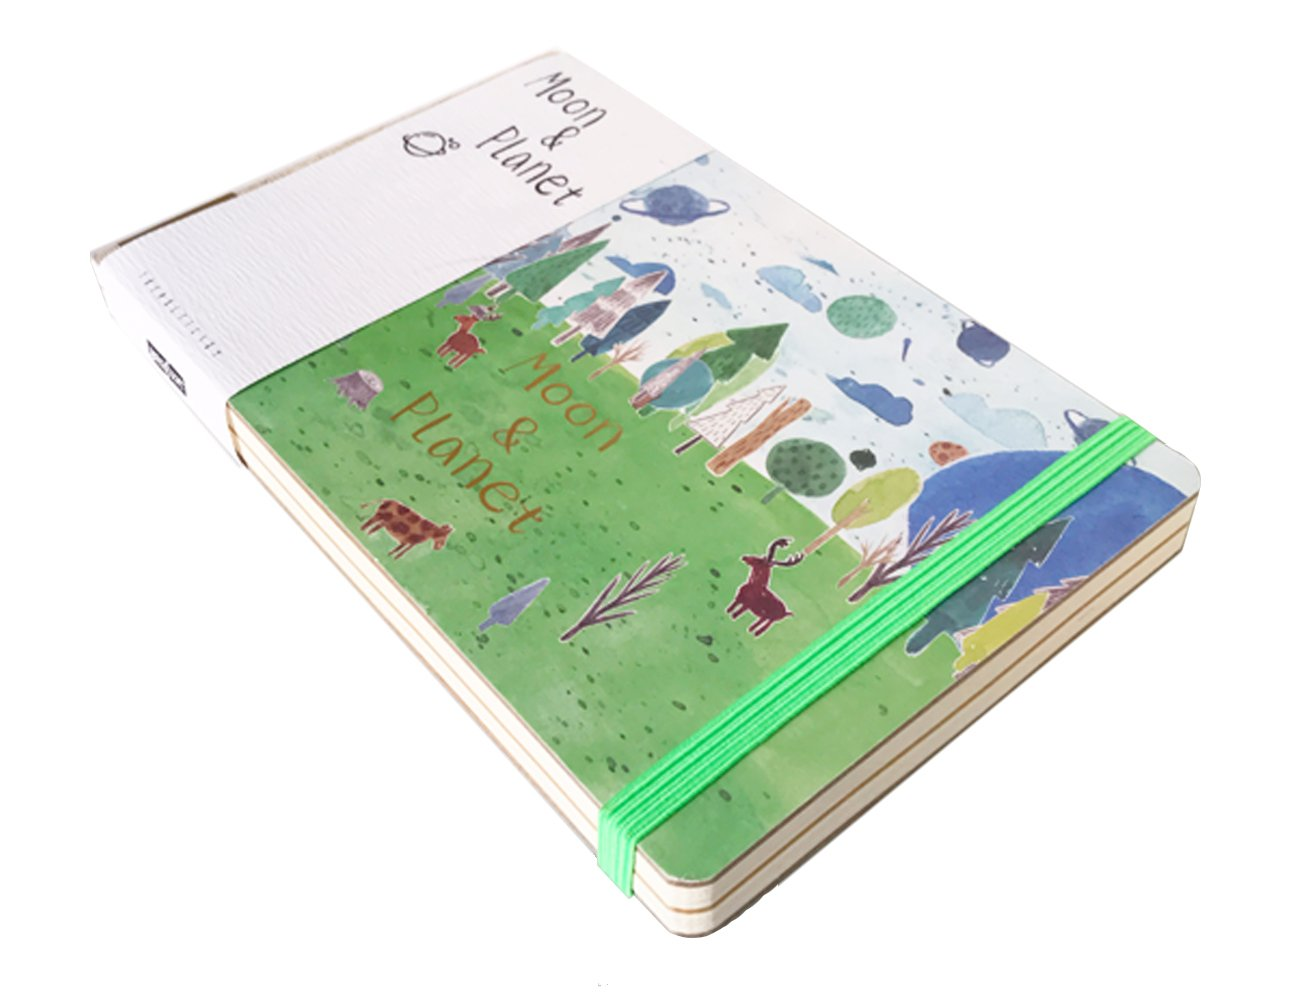 Siixu Hardcover Sketchbook for Drawing, Blank Paper, Inner Pocket, 120 Sheets (8.2 x 5.4)